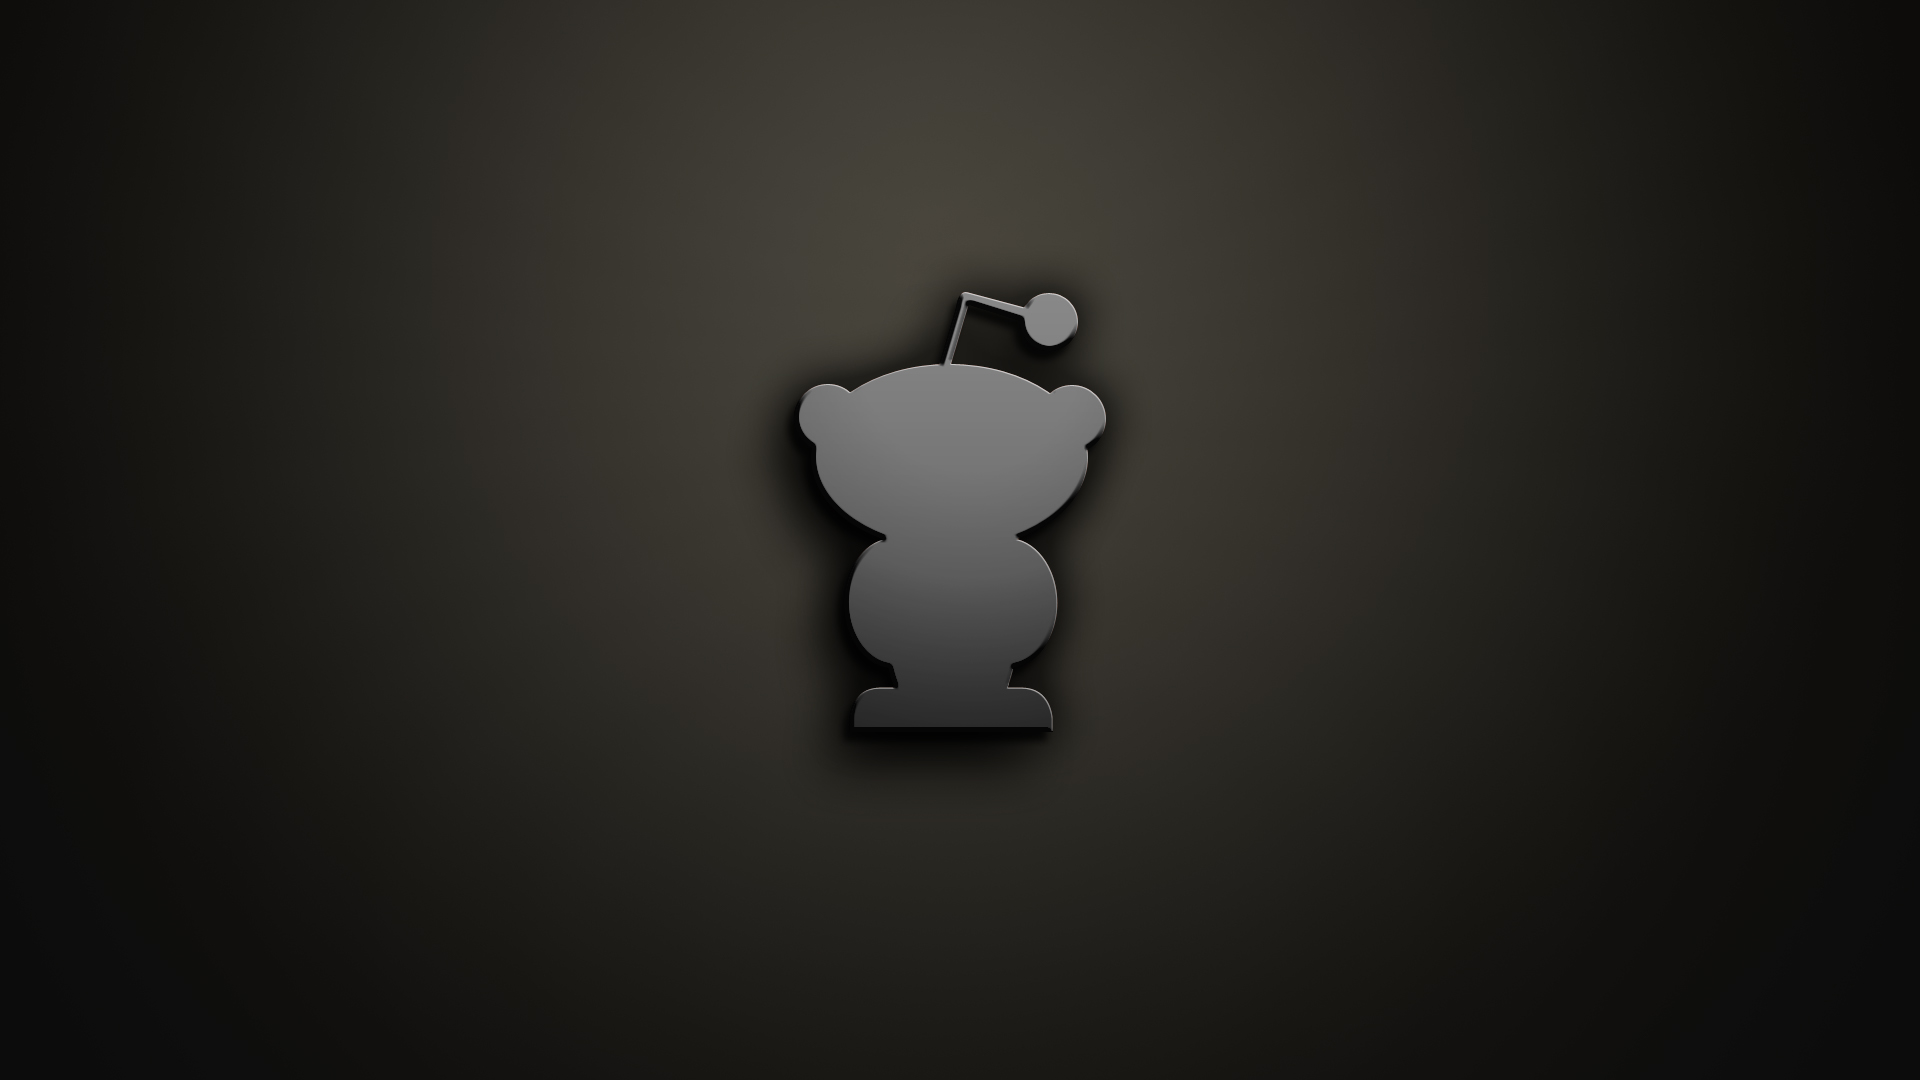 reddit wallpaper for pc